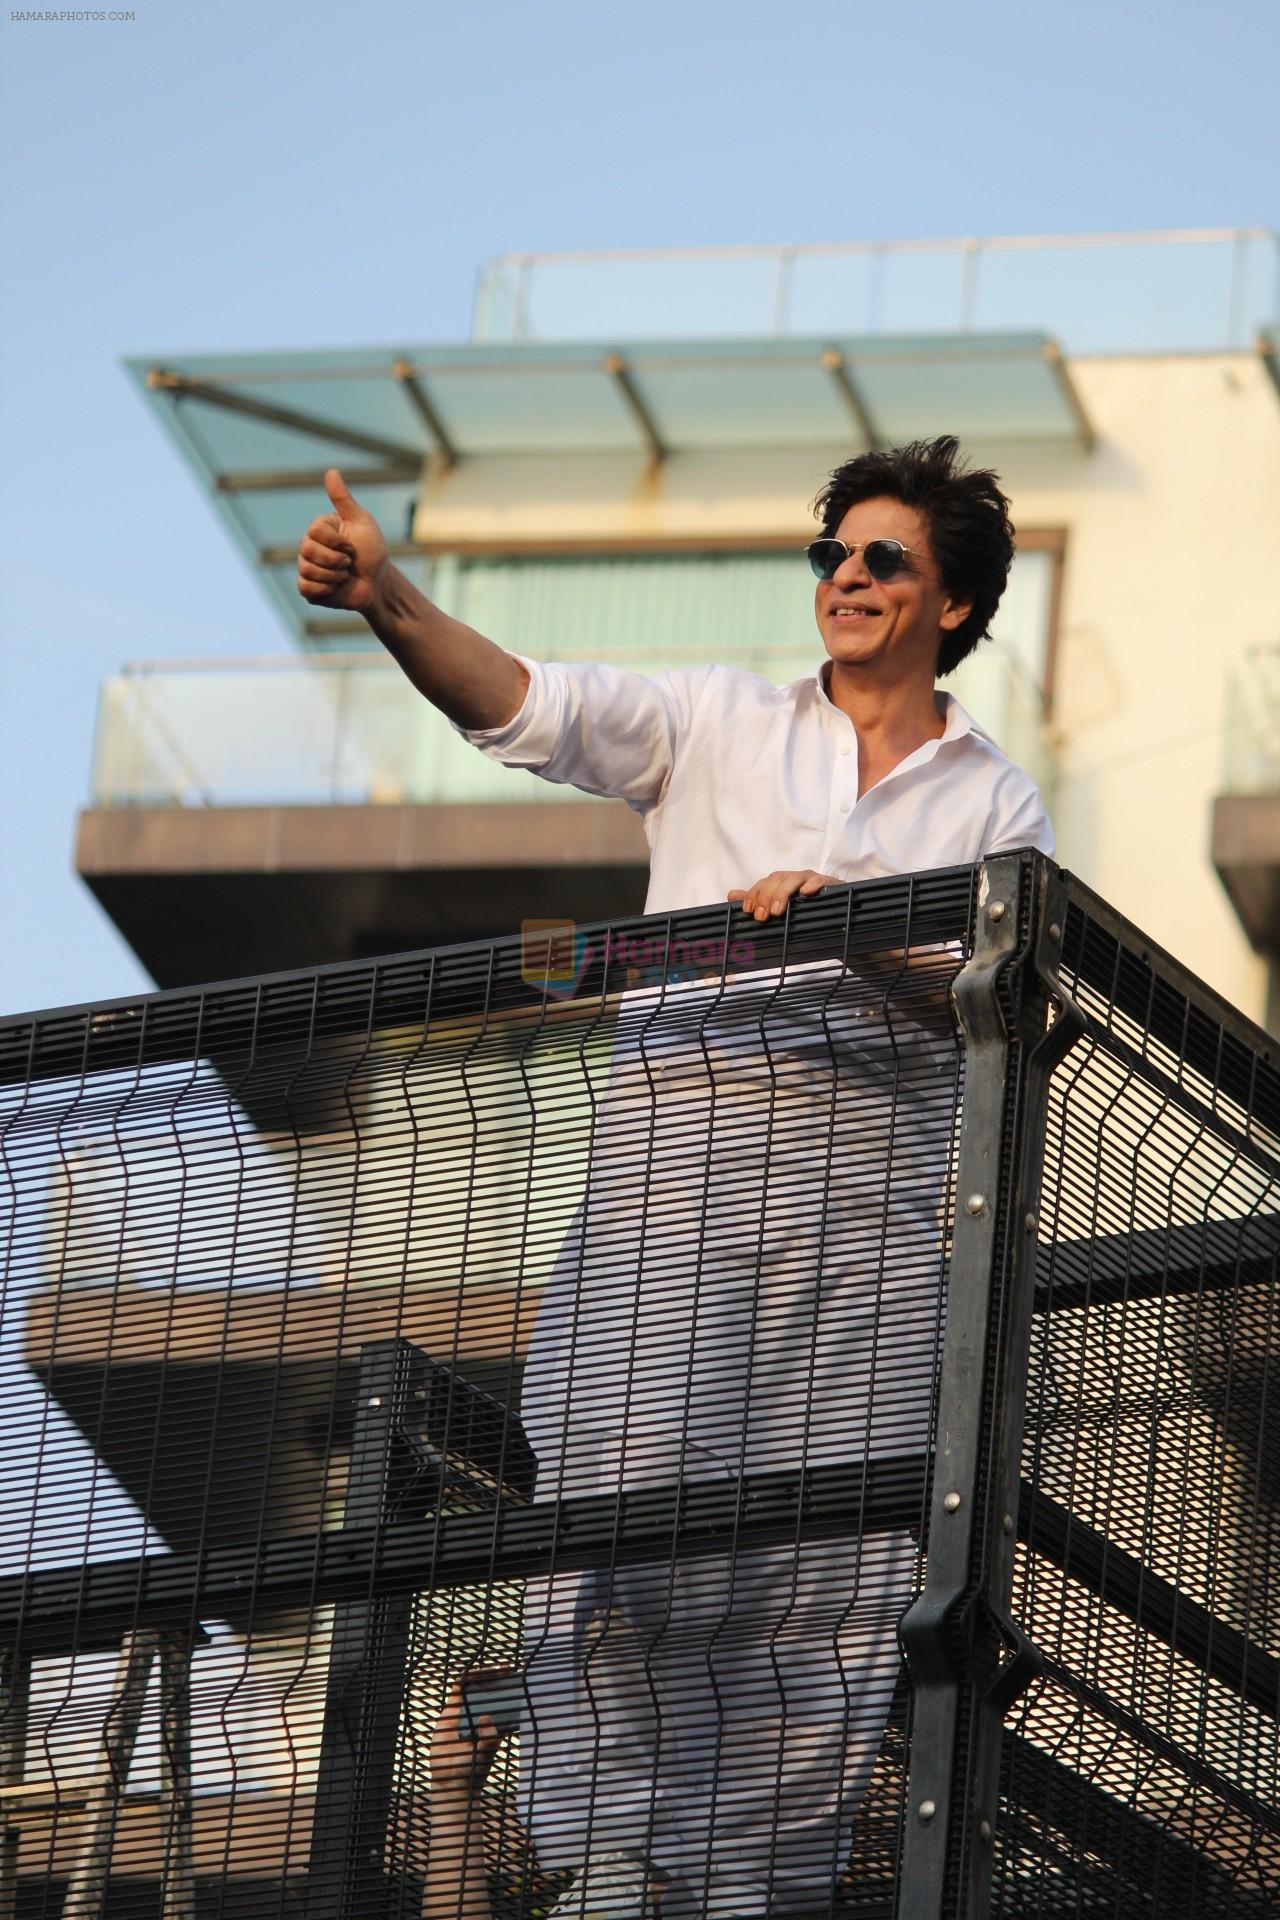 Shahrukh Khan with son Abram waves the fans on Eid at his bandra residence on 5th June 2019